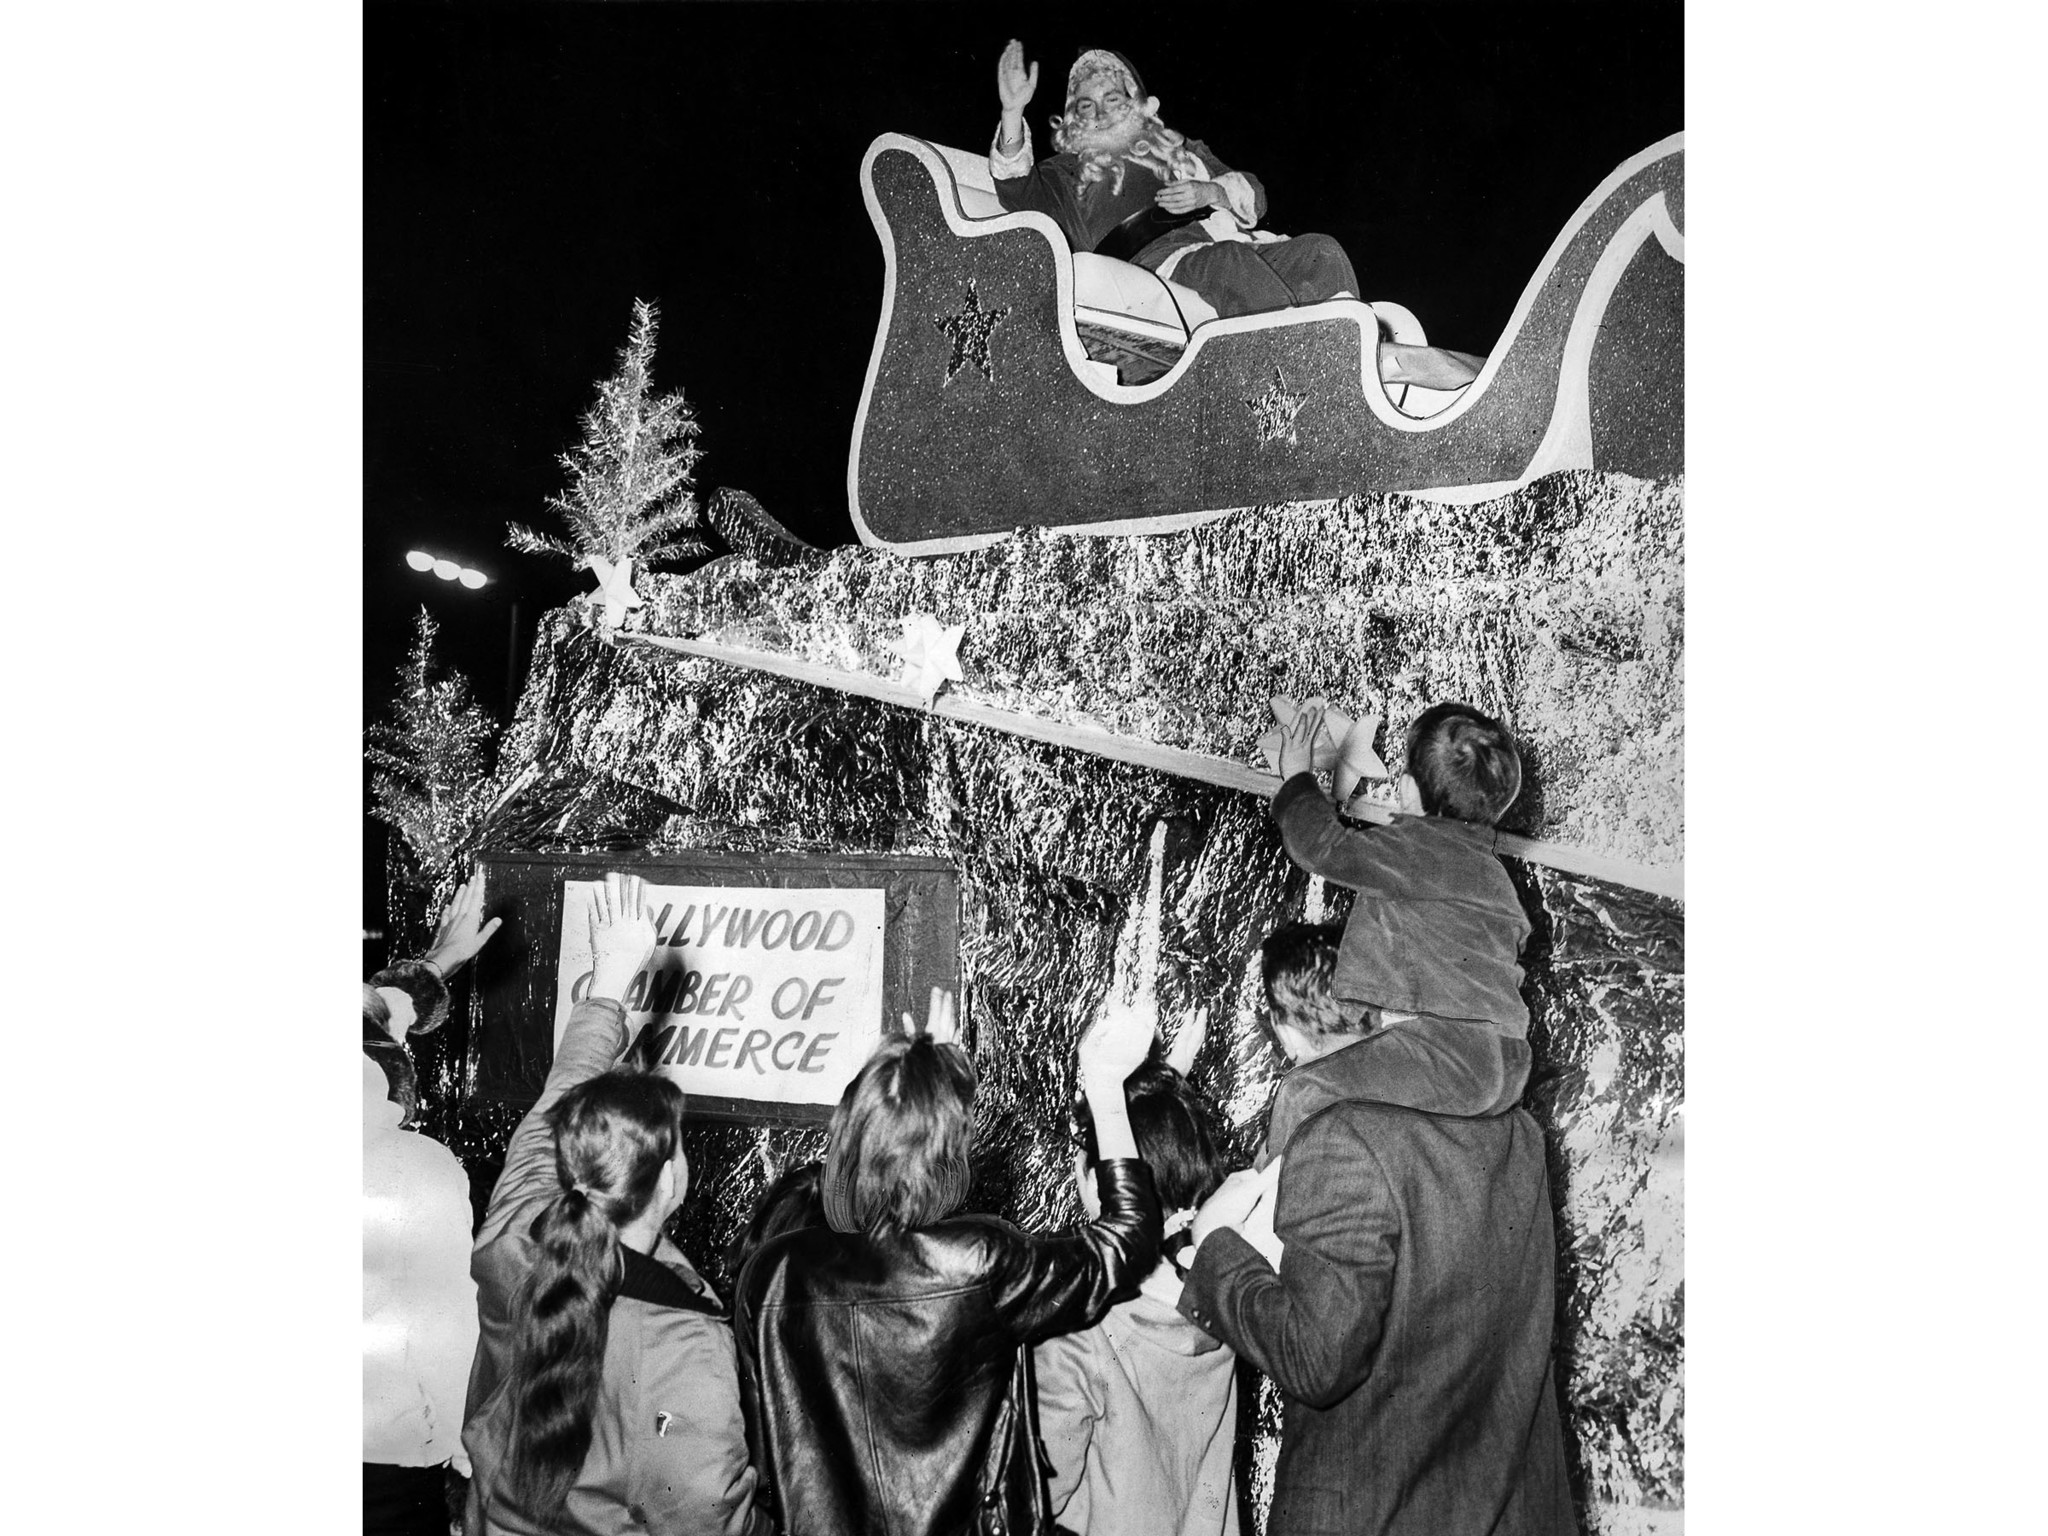 Nov. 23, 1960: Santa, actually actor Burt Lange, waves to the crowd during the Hollywood Santa Claus